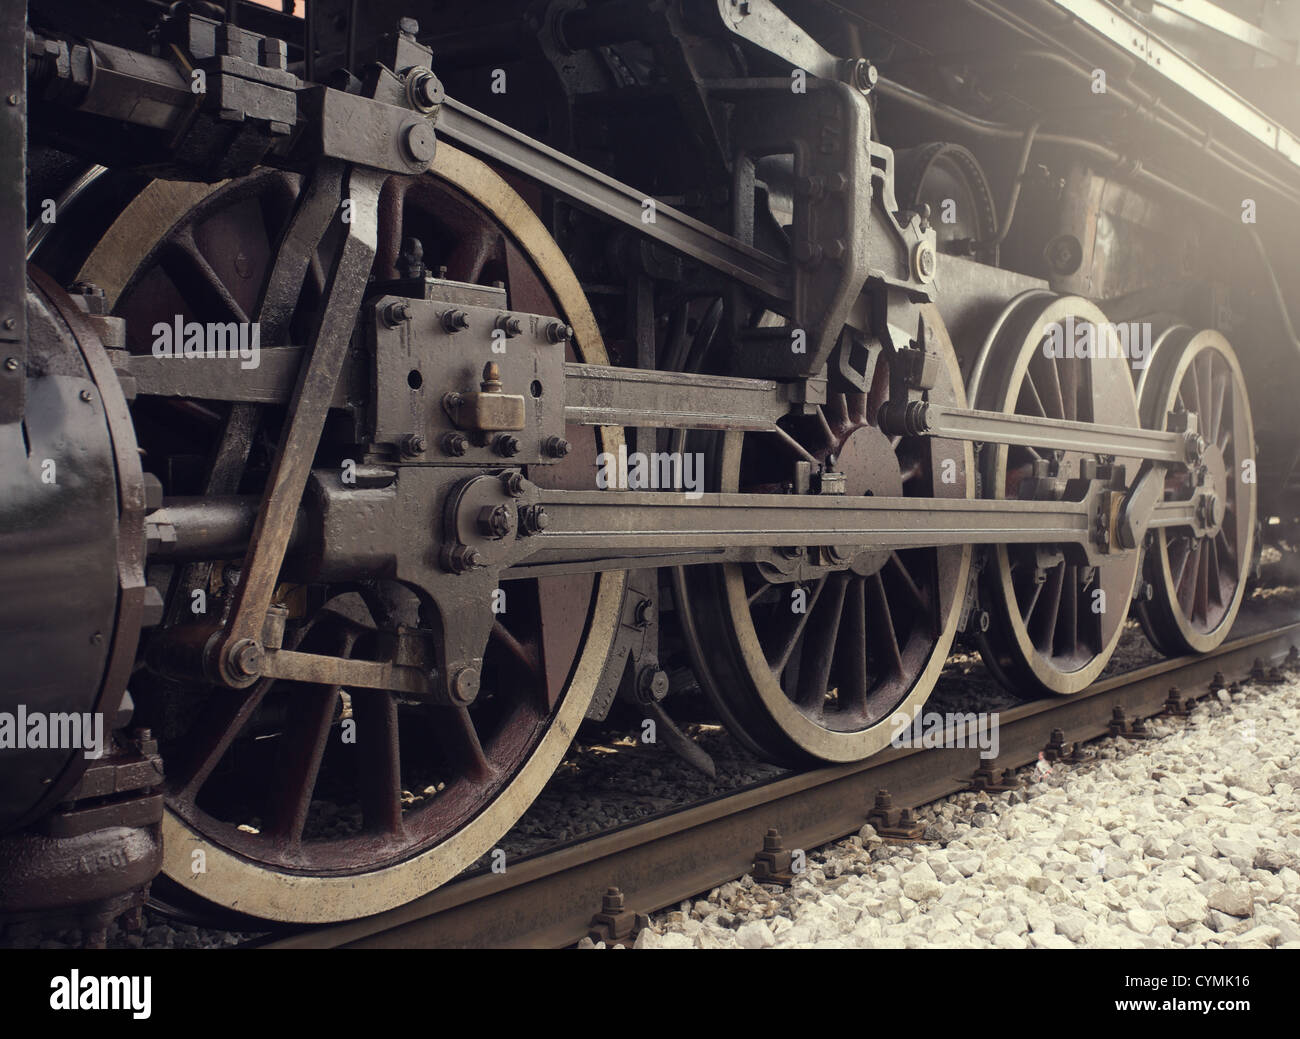 Old locomotive wheels close up. - Stock Image